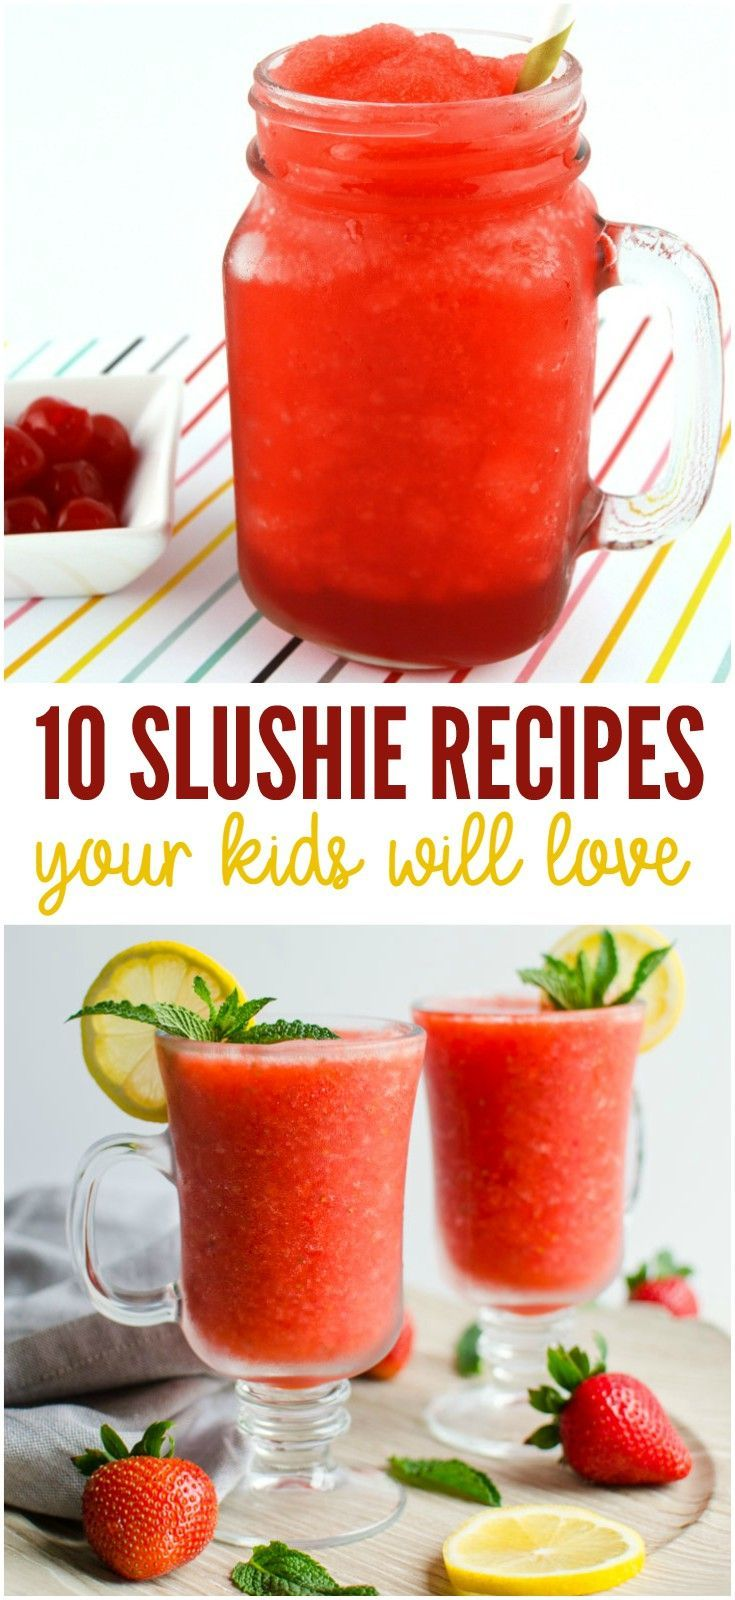 Keep the kids cool and happy this summer with these 10 yummy slushie recipes for kids!